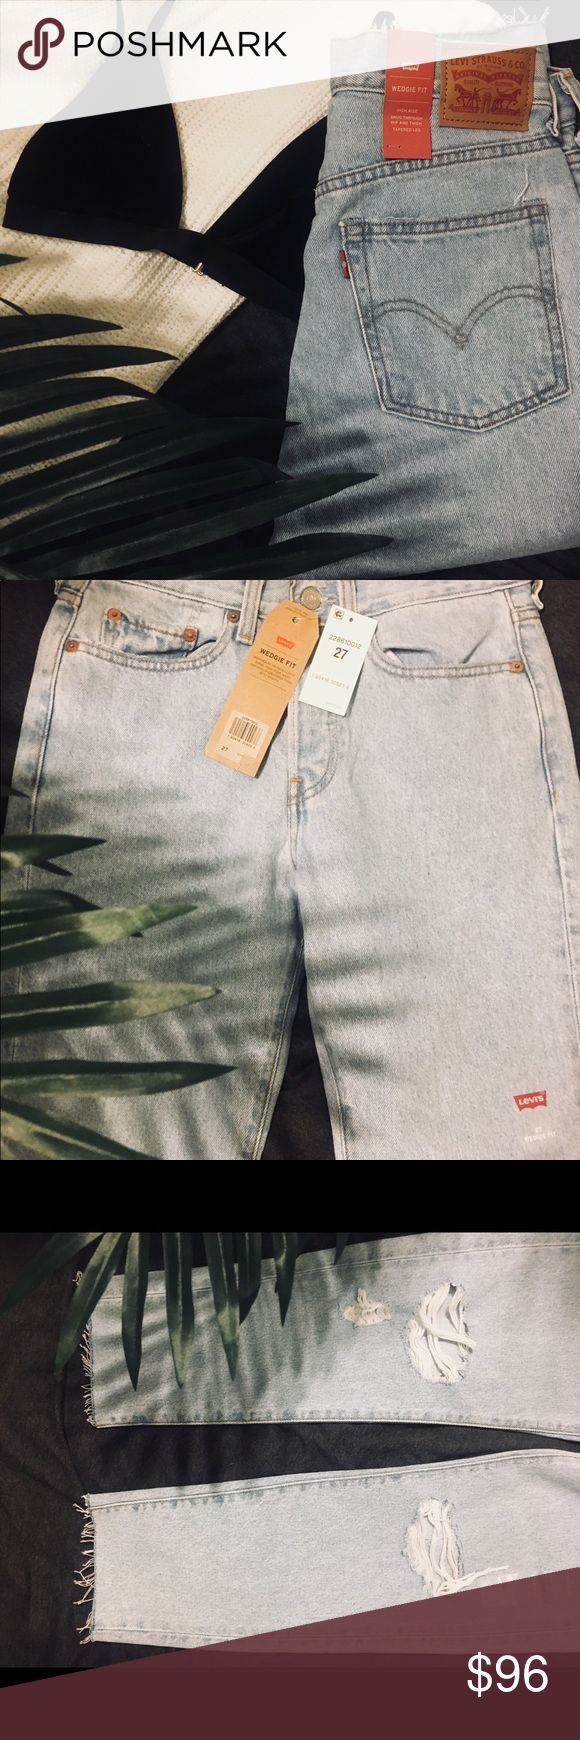 """Women's wedgie fit Levi's-NEVER WORN-size 27 I bought these jeans but they were a size too big on me. They still have the tags and have never been worn. They are a size 27 is the wash """"Kiss Off"""". I am 5'3"""" and they are a perfect length and 100% recommend them as they are very comfortable. The wedgie jeans look exactly like the vintage 501 Levi's you see everywhere on Instagram. If you would like specific measurements of them please message me. The shipping price is cheaper on Poshmark than…"""